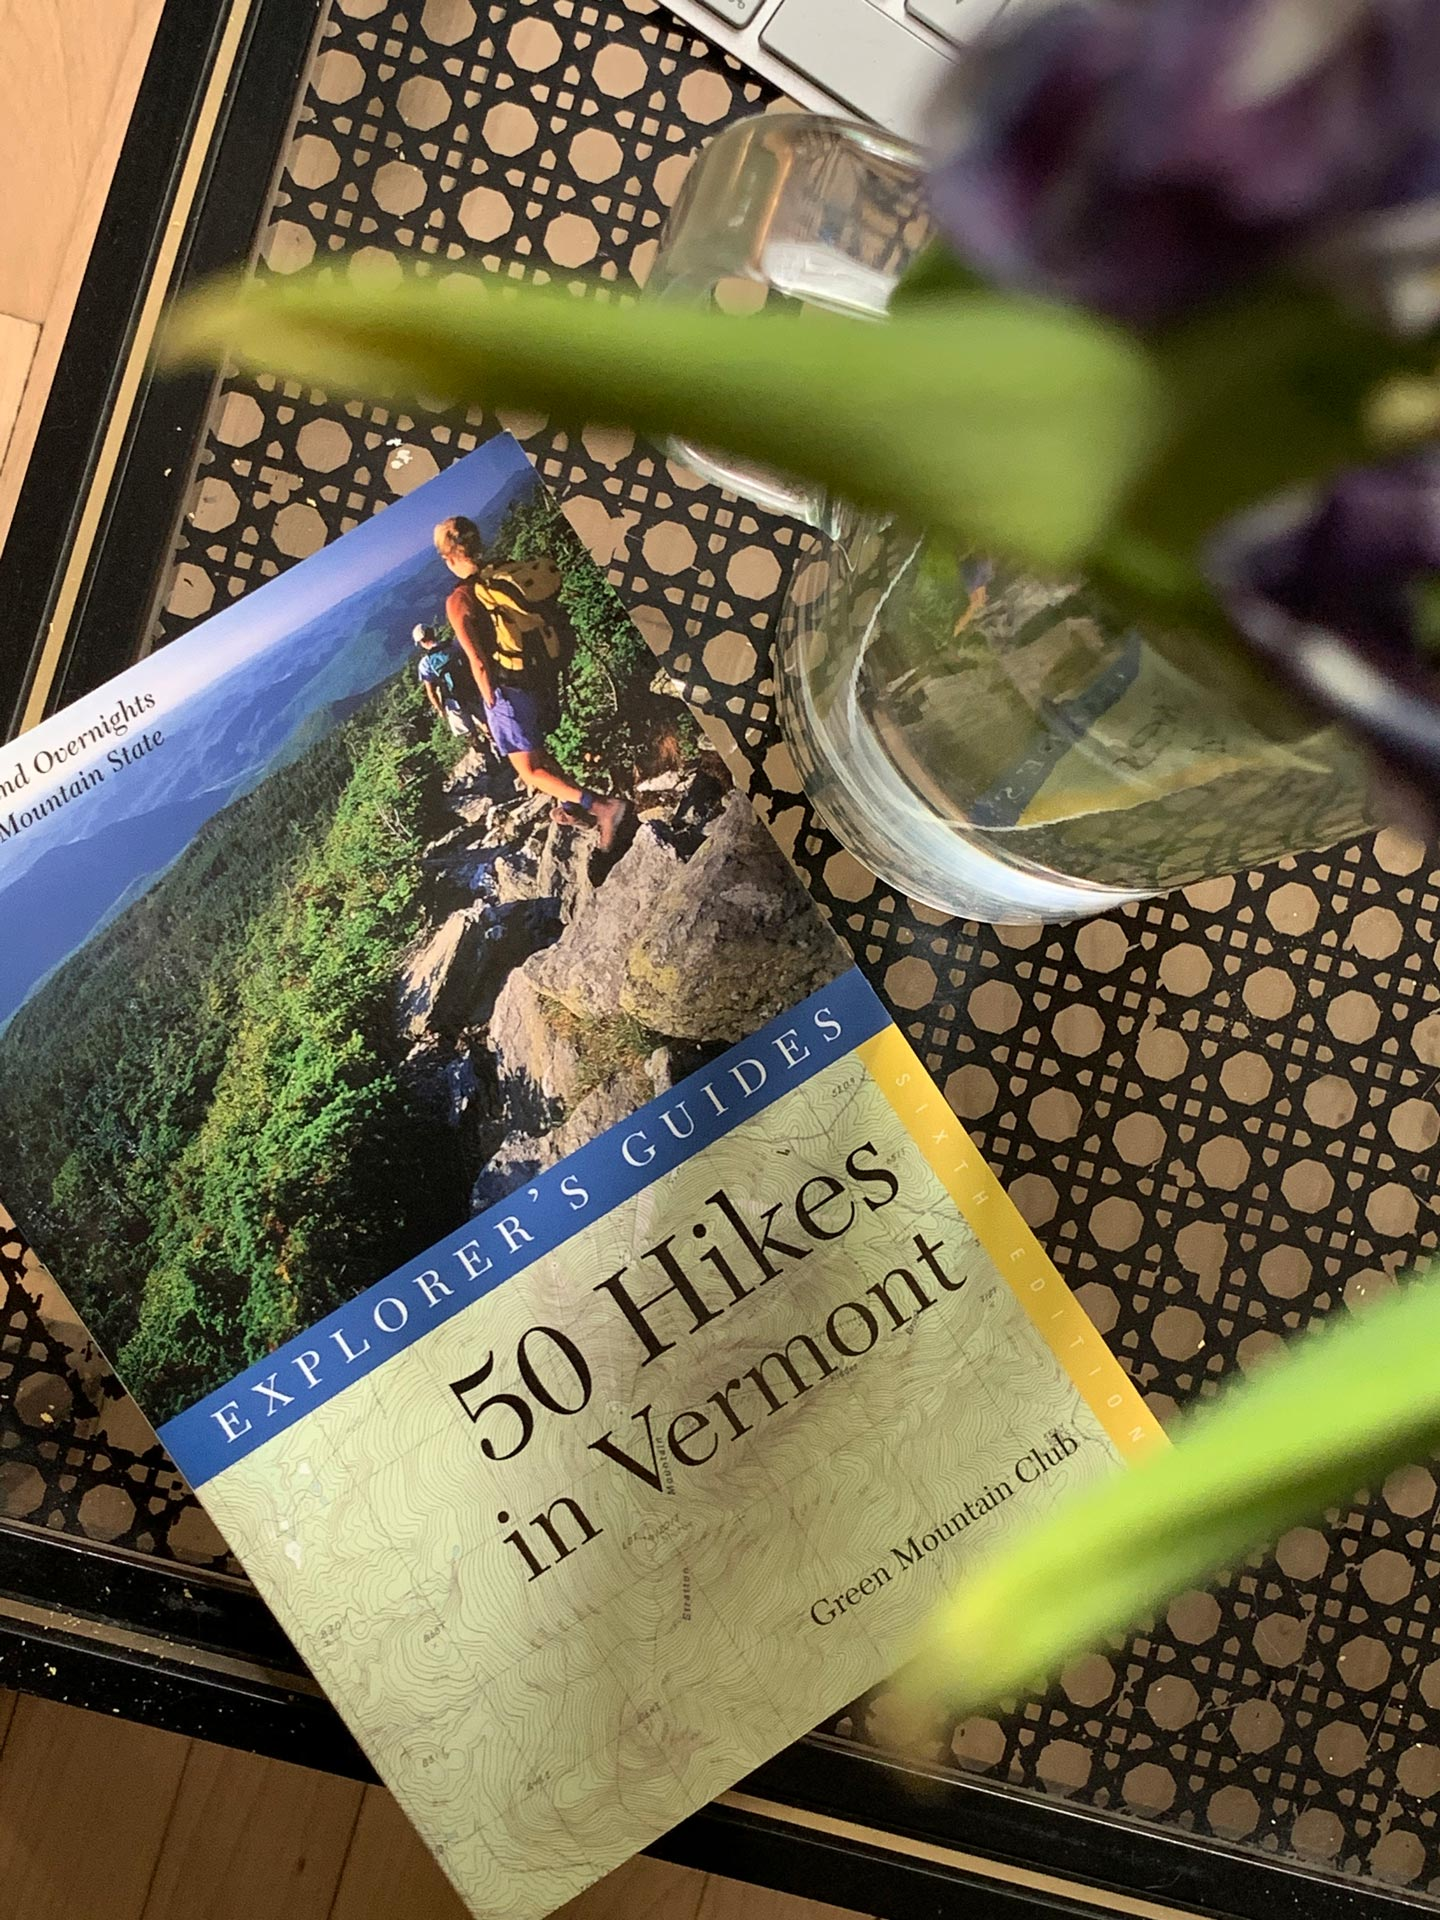 book 50 hikes in vermont by explorer's guide